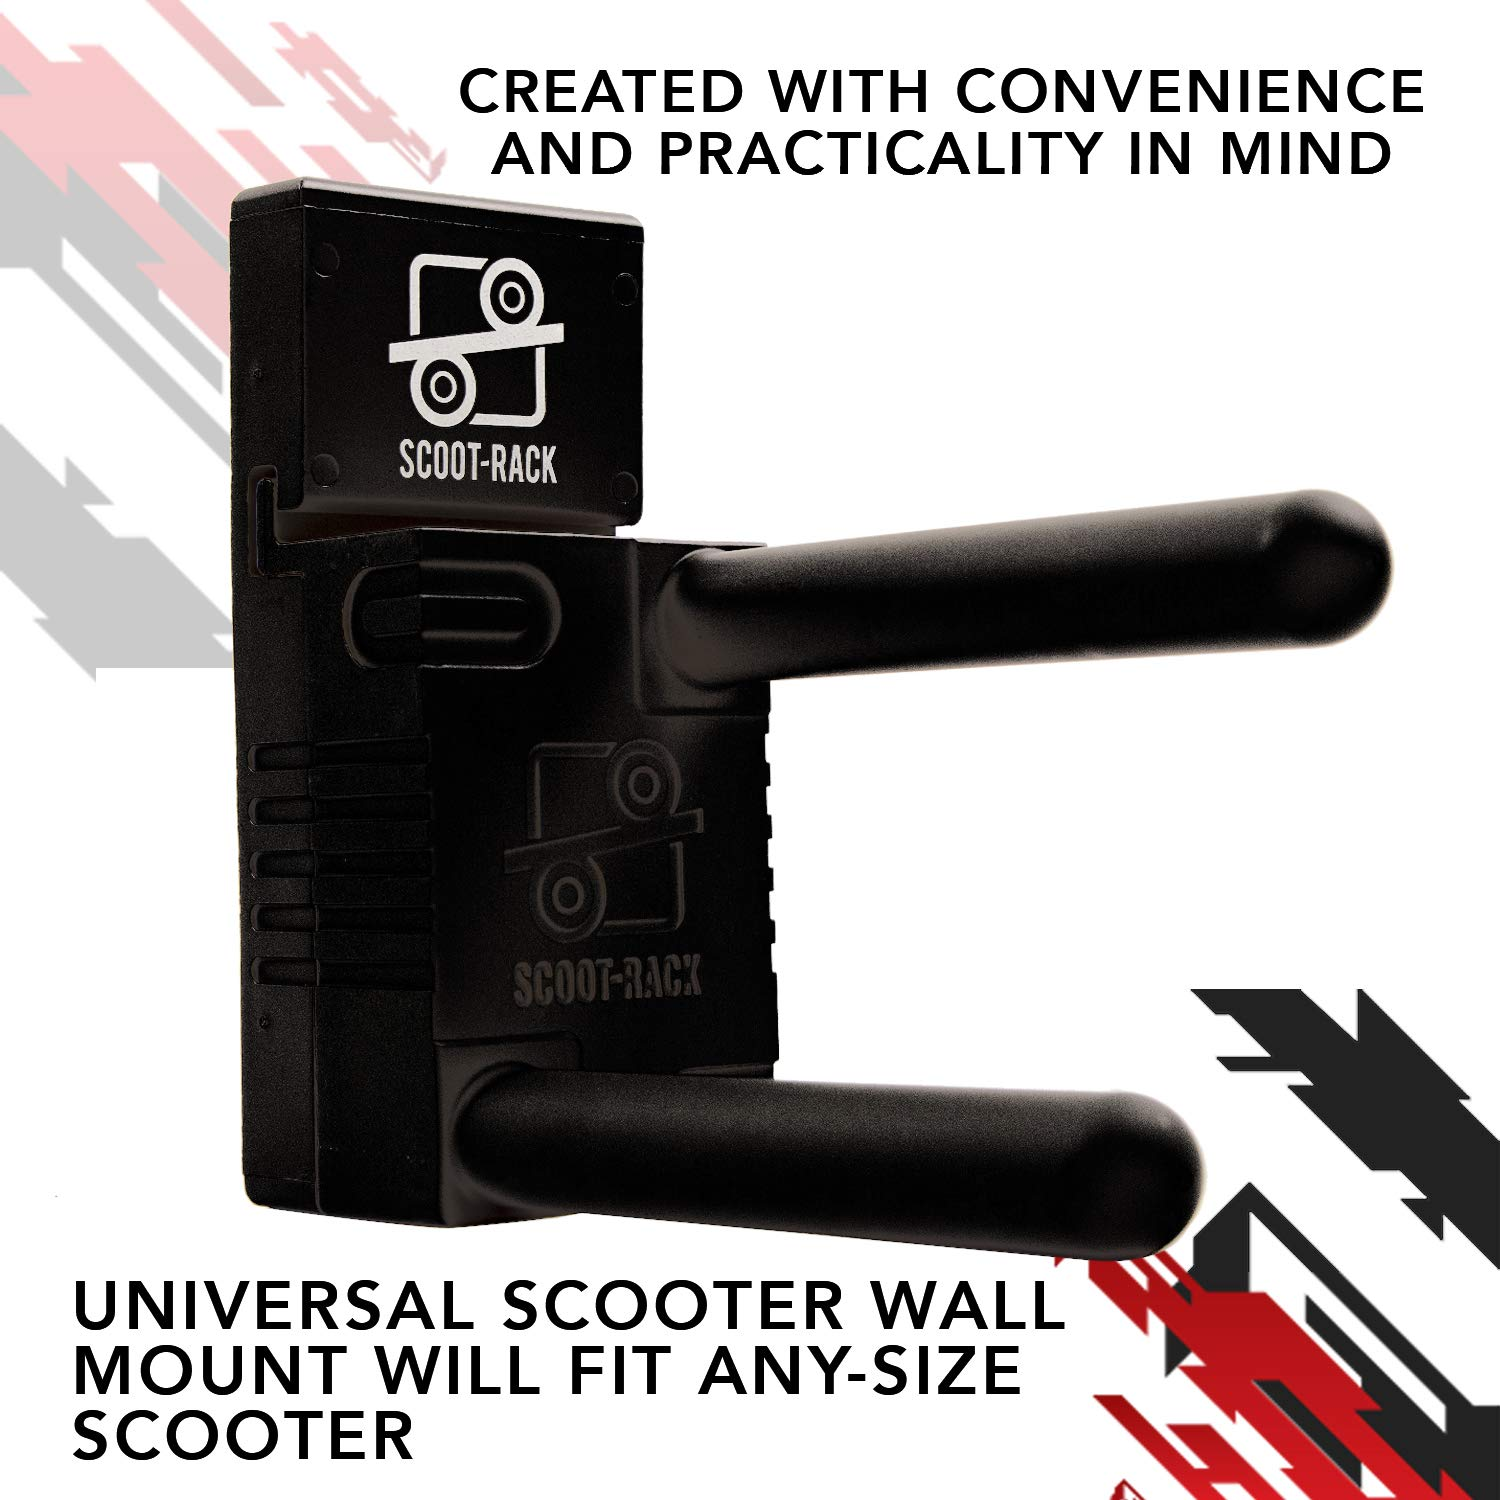 Storage Solution for Freestyle Scooters Scooter Rack for Kids Scooters Pro Scooter Rack Wall Mount Fits 2 /& 3 Wheeled Scooters Universal Wall Mount for Stunt Scooters Setups of Any Size